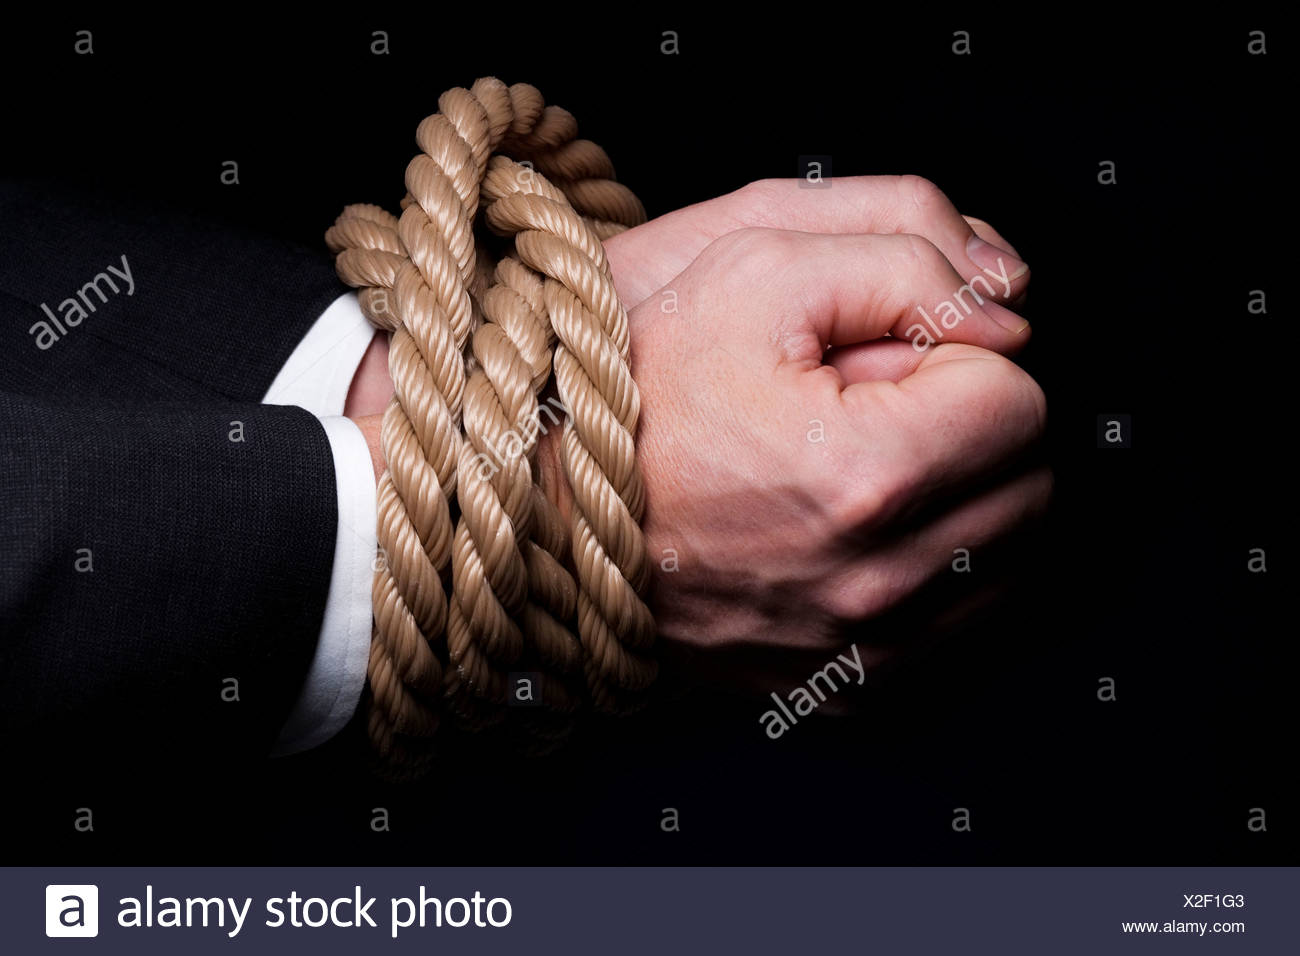 Hands Tied Wrists Rope Stockfotos & Hands Tied Wrists Rope Bilder ...